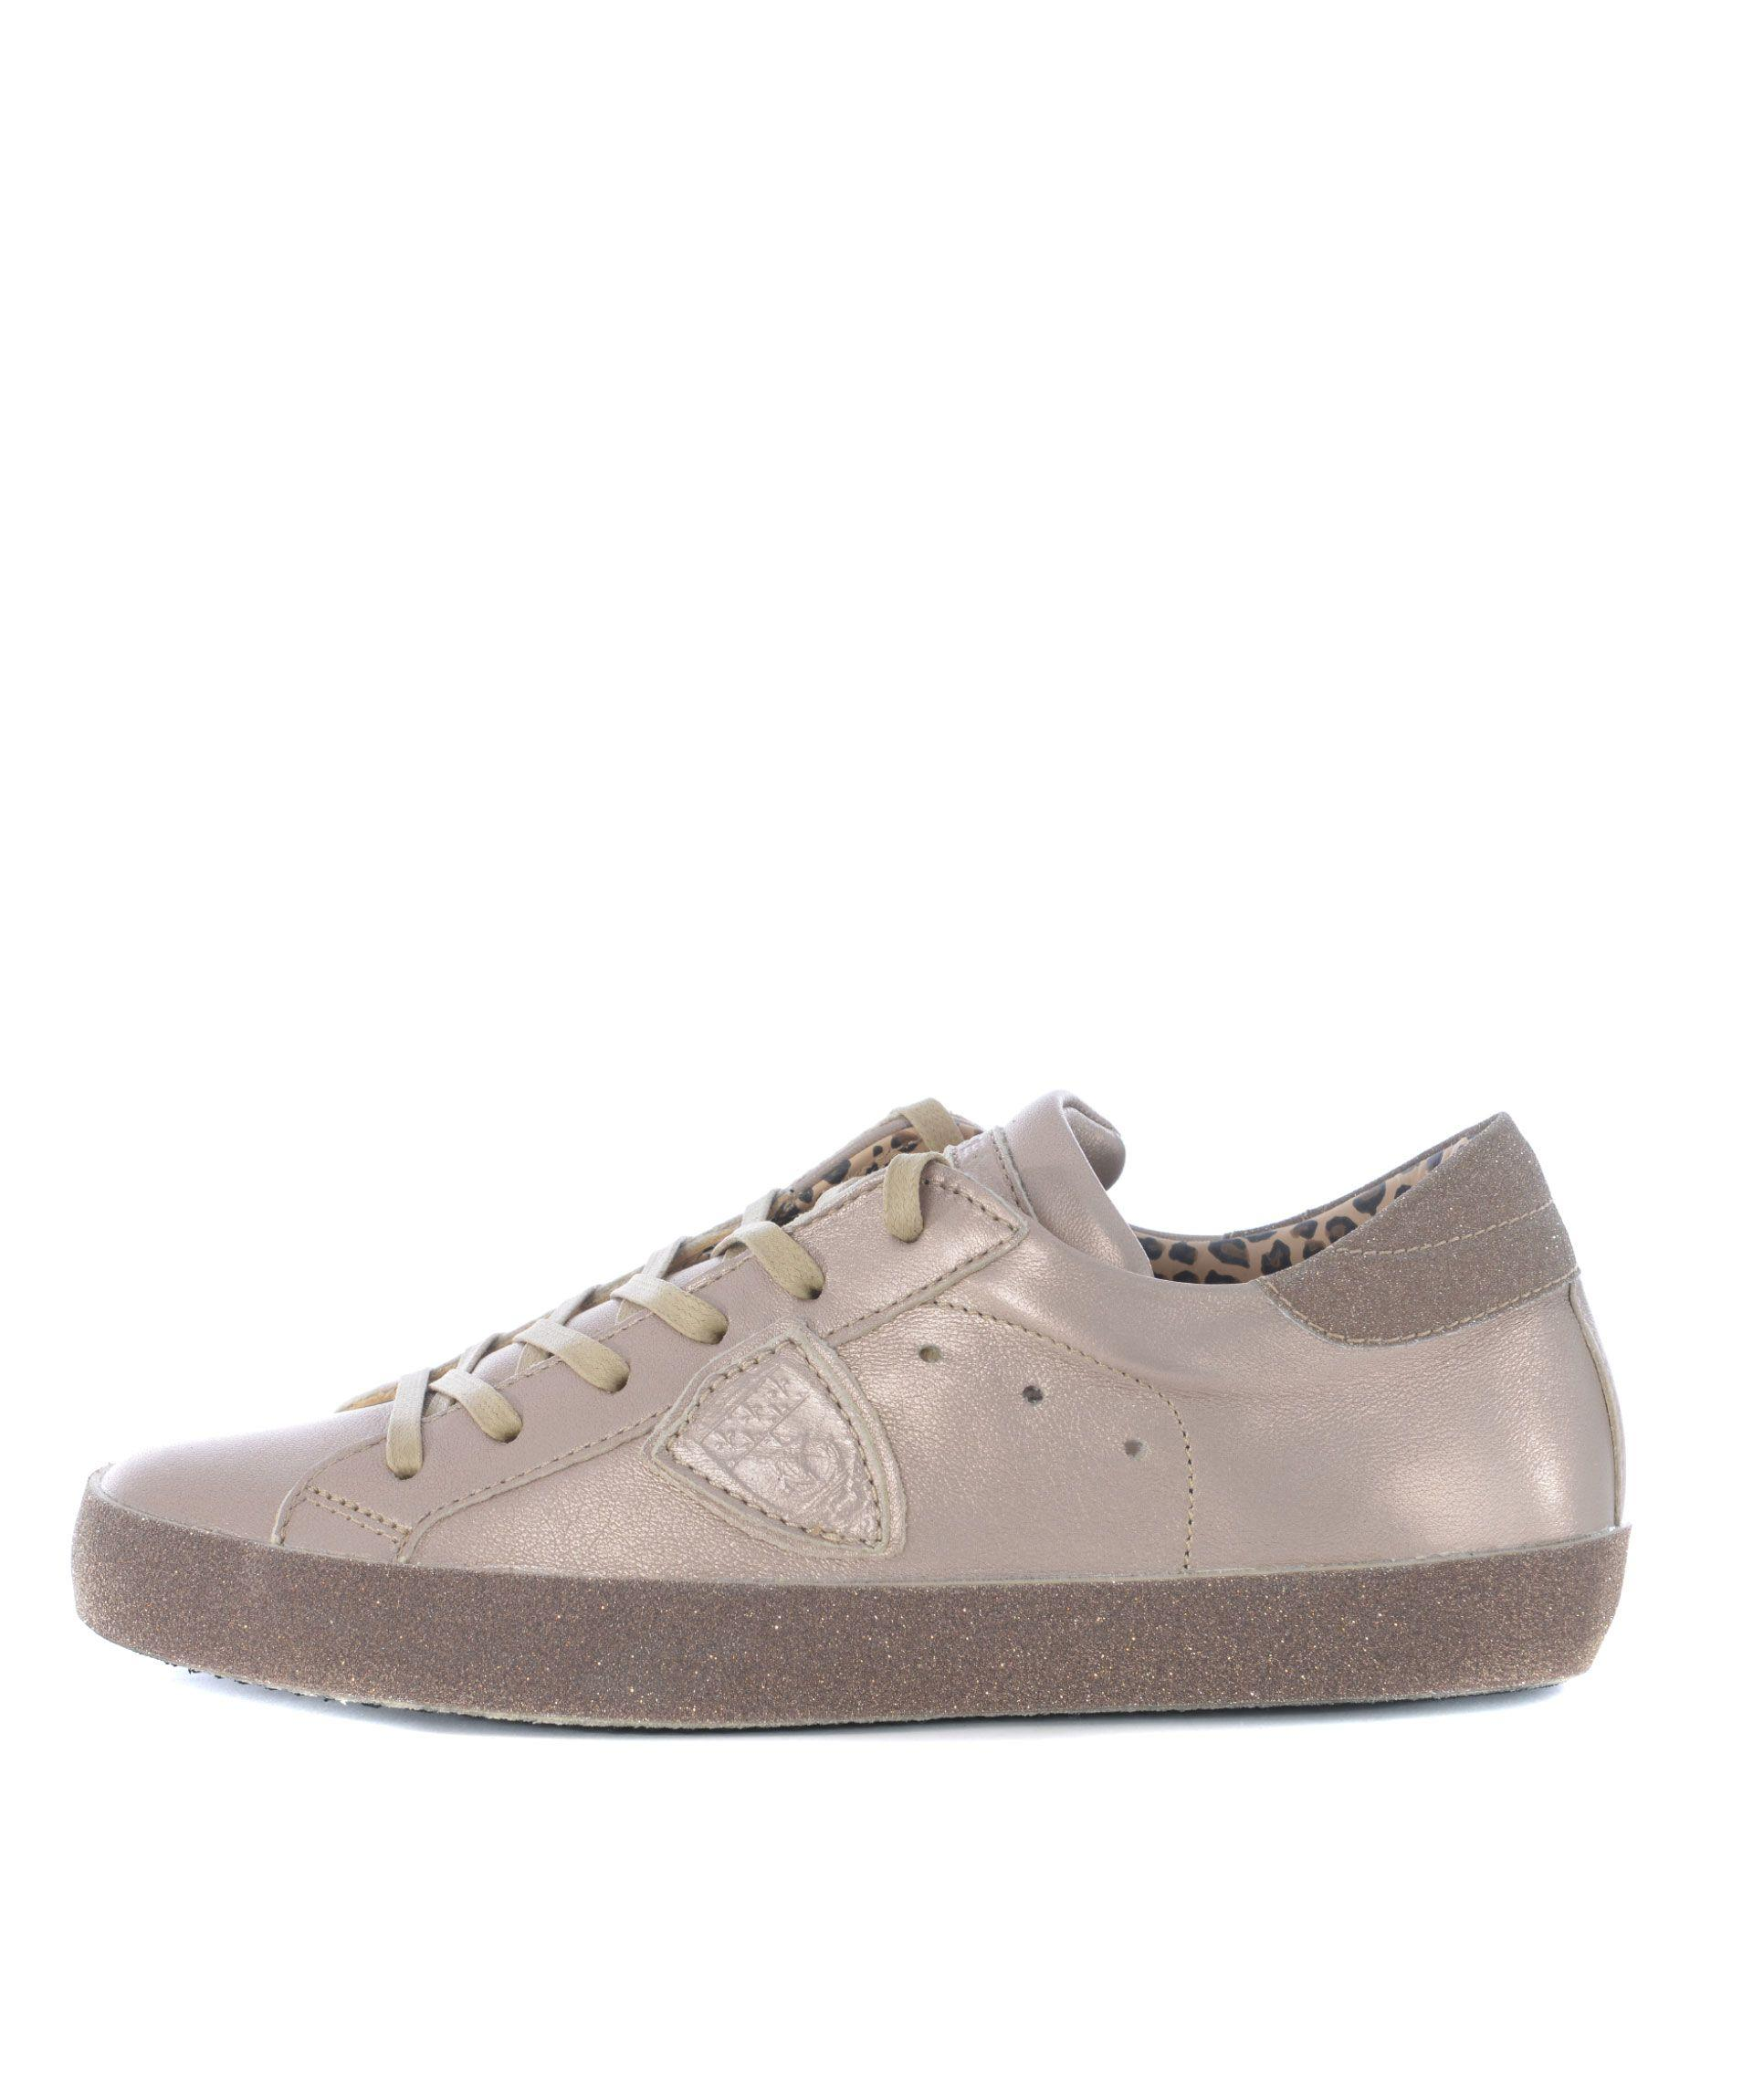 Philippe Model Glitter Effect Sneakers In Champagne